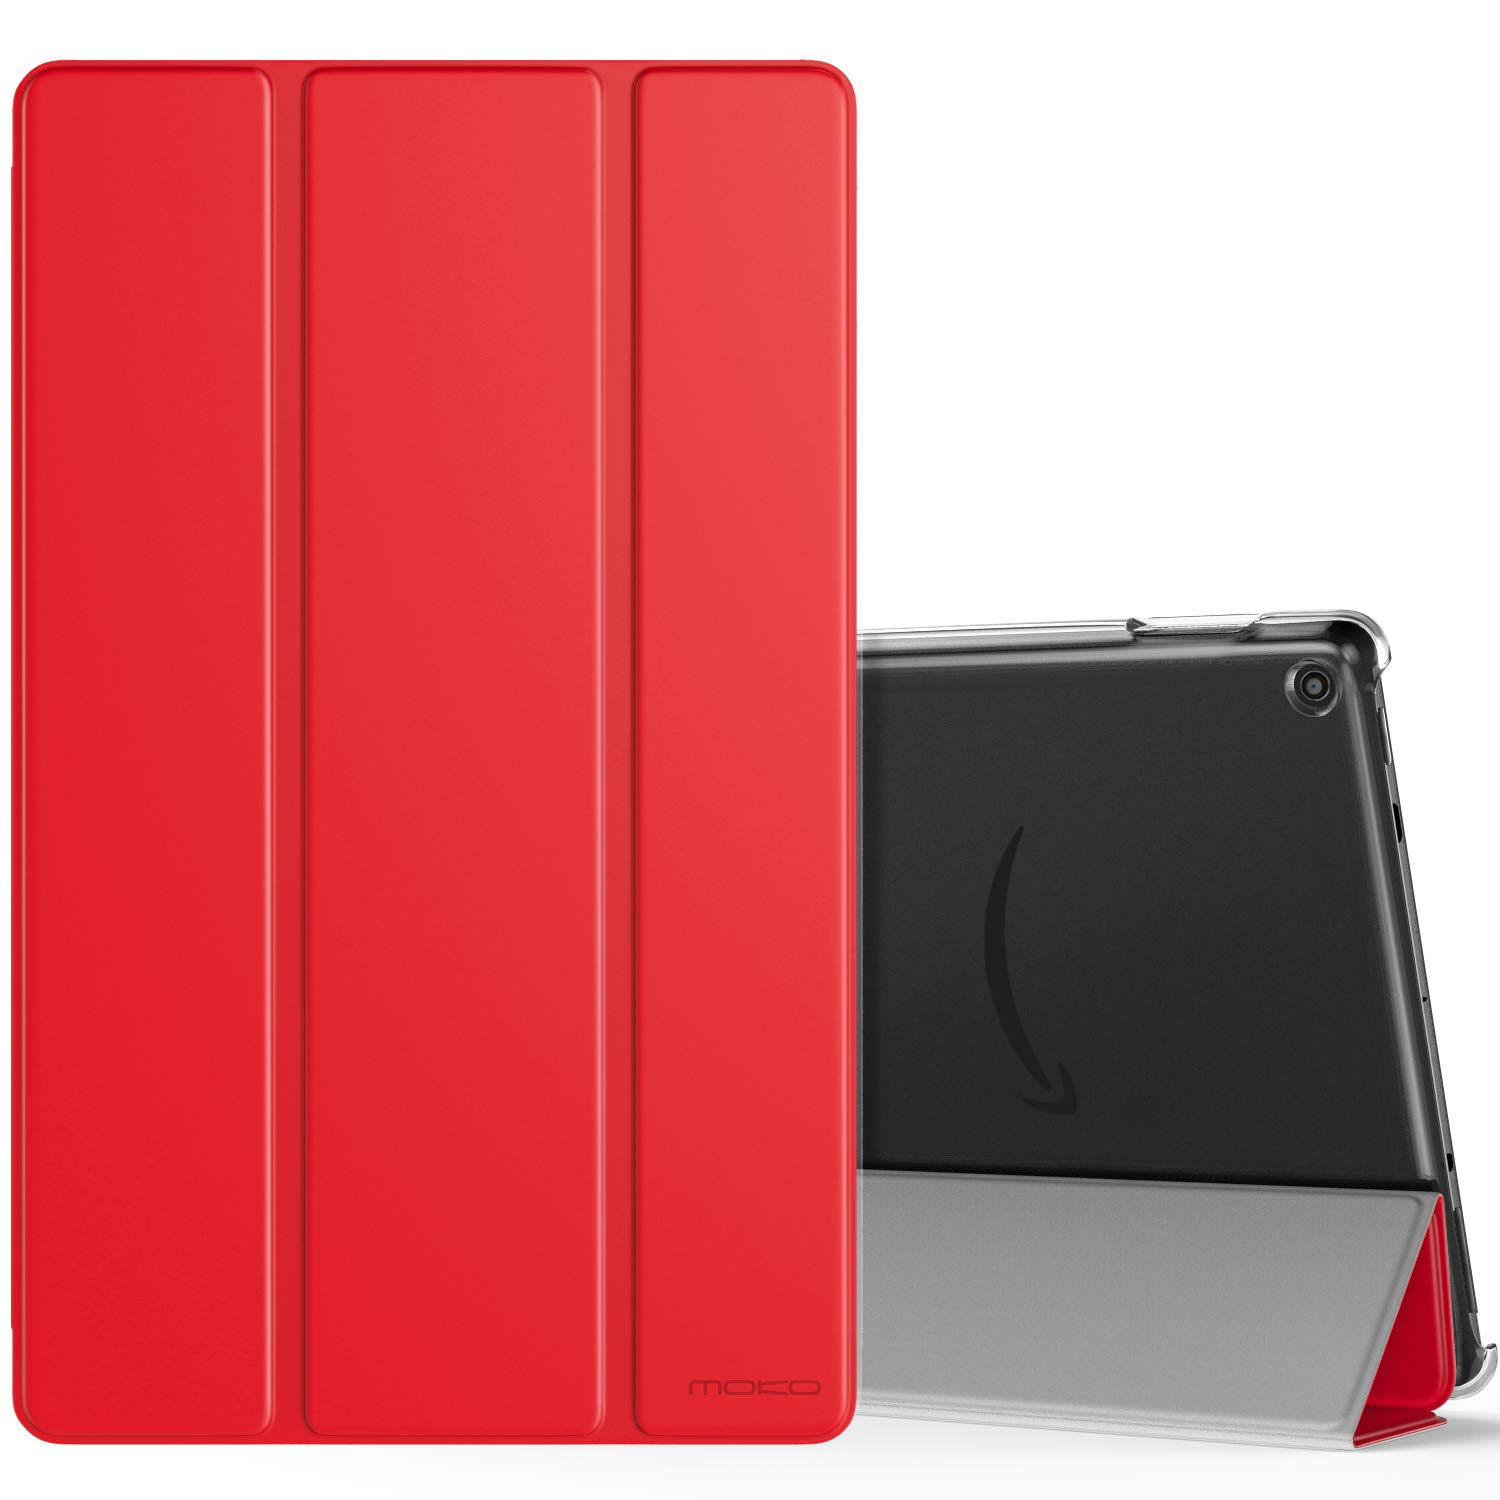 MoKo Case Fits All-New Fire HD 10 (7th Generation and 9th Generation, 2017 and 2019 Release), Smart Shell Stand Cover with Translucent Frosted Back for Fire HD 10.1 Inch, RED